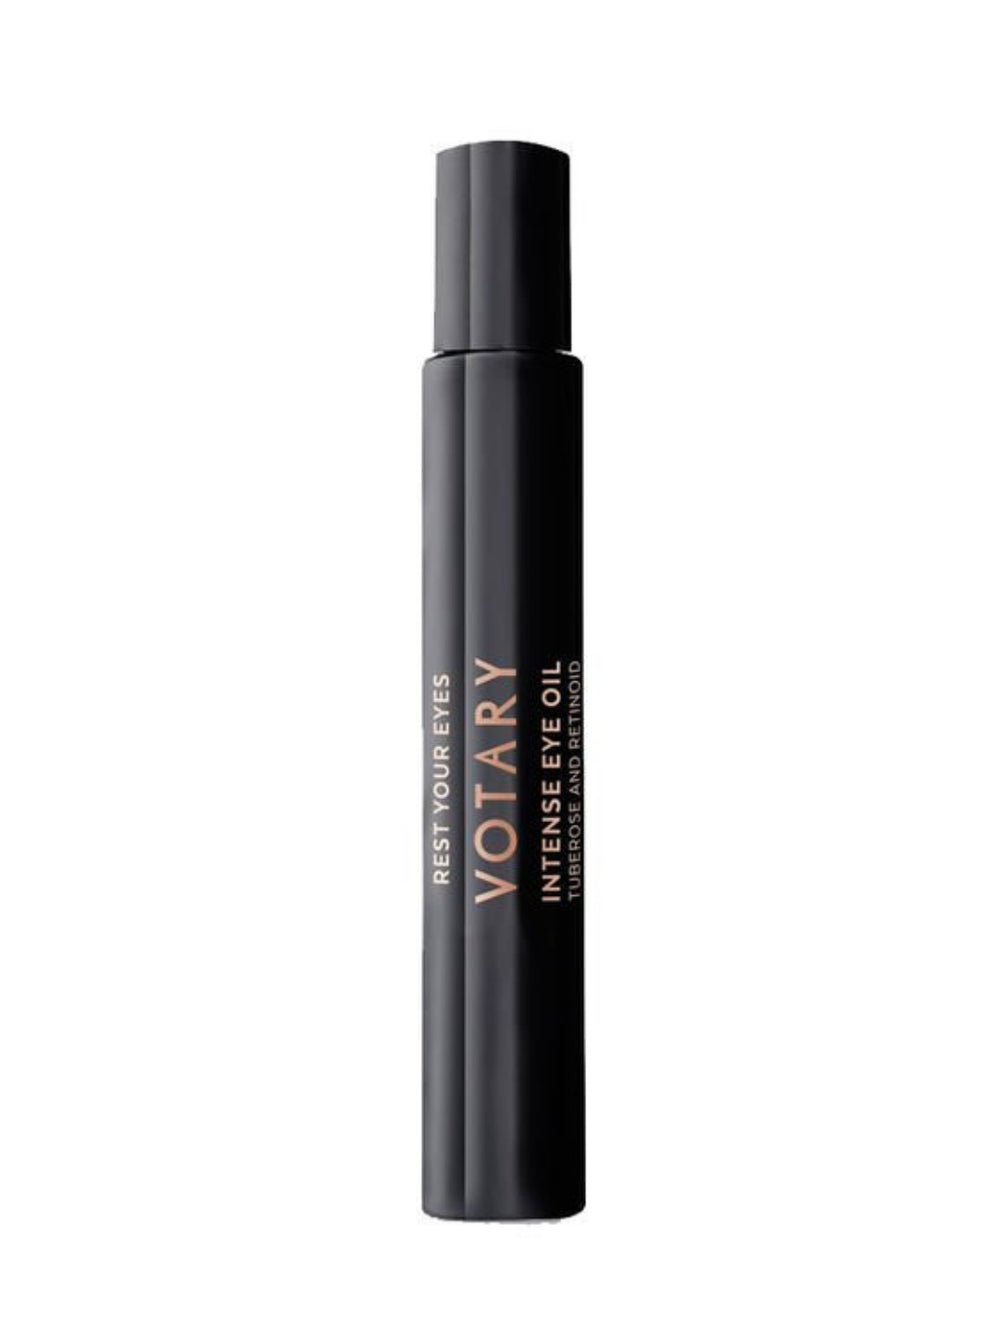 votary-intense-eye-oil